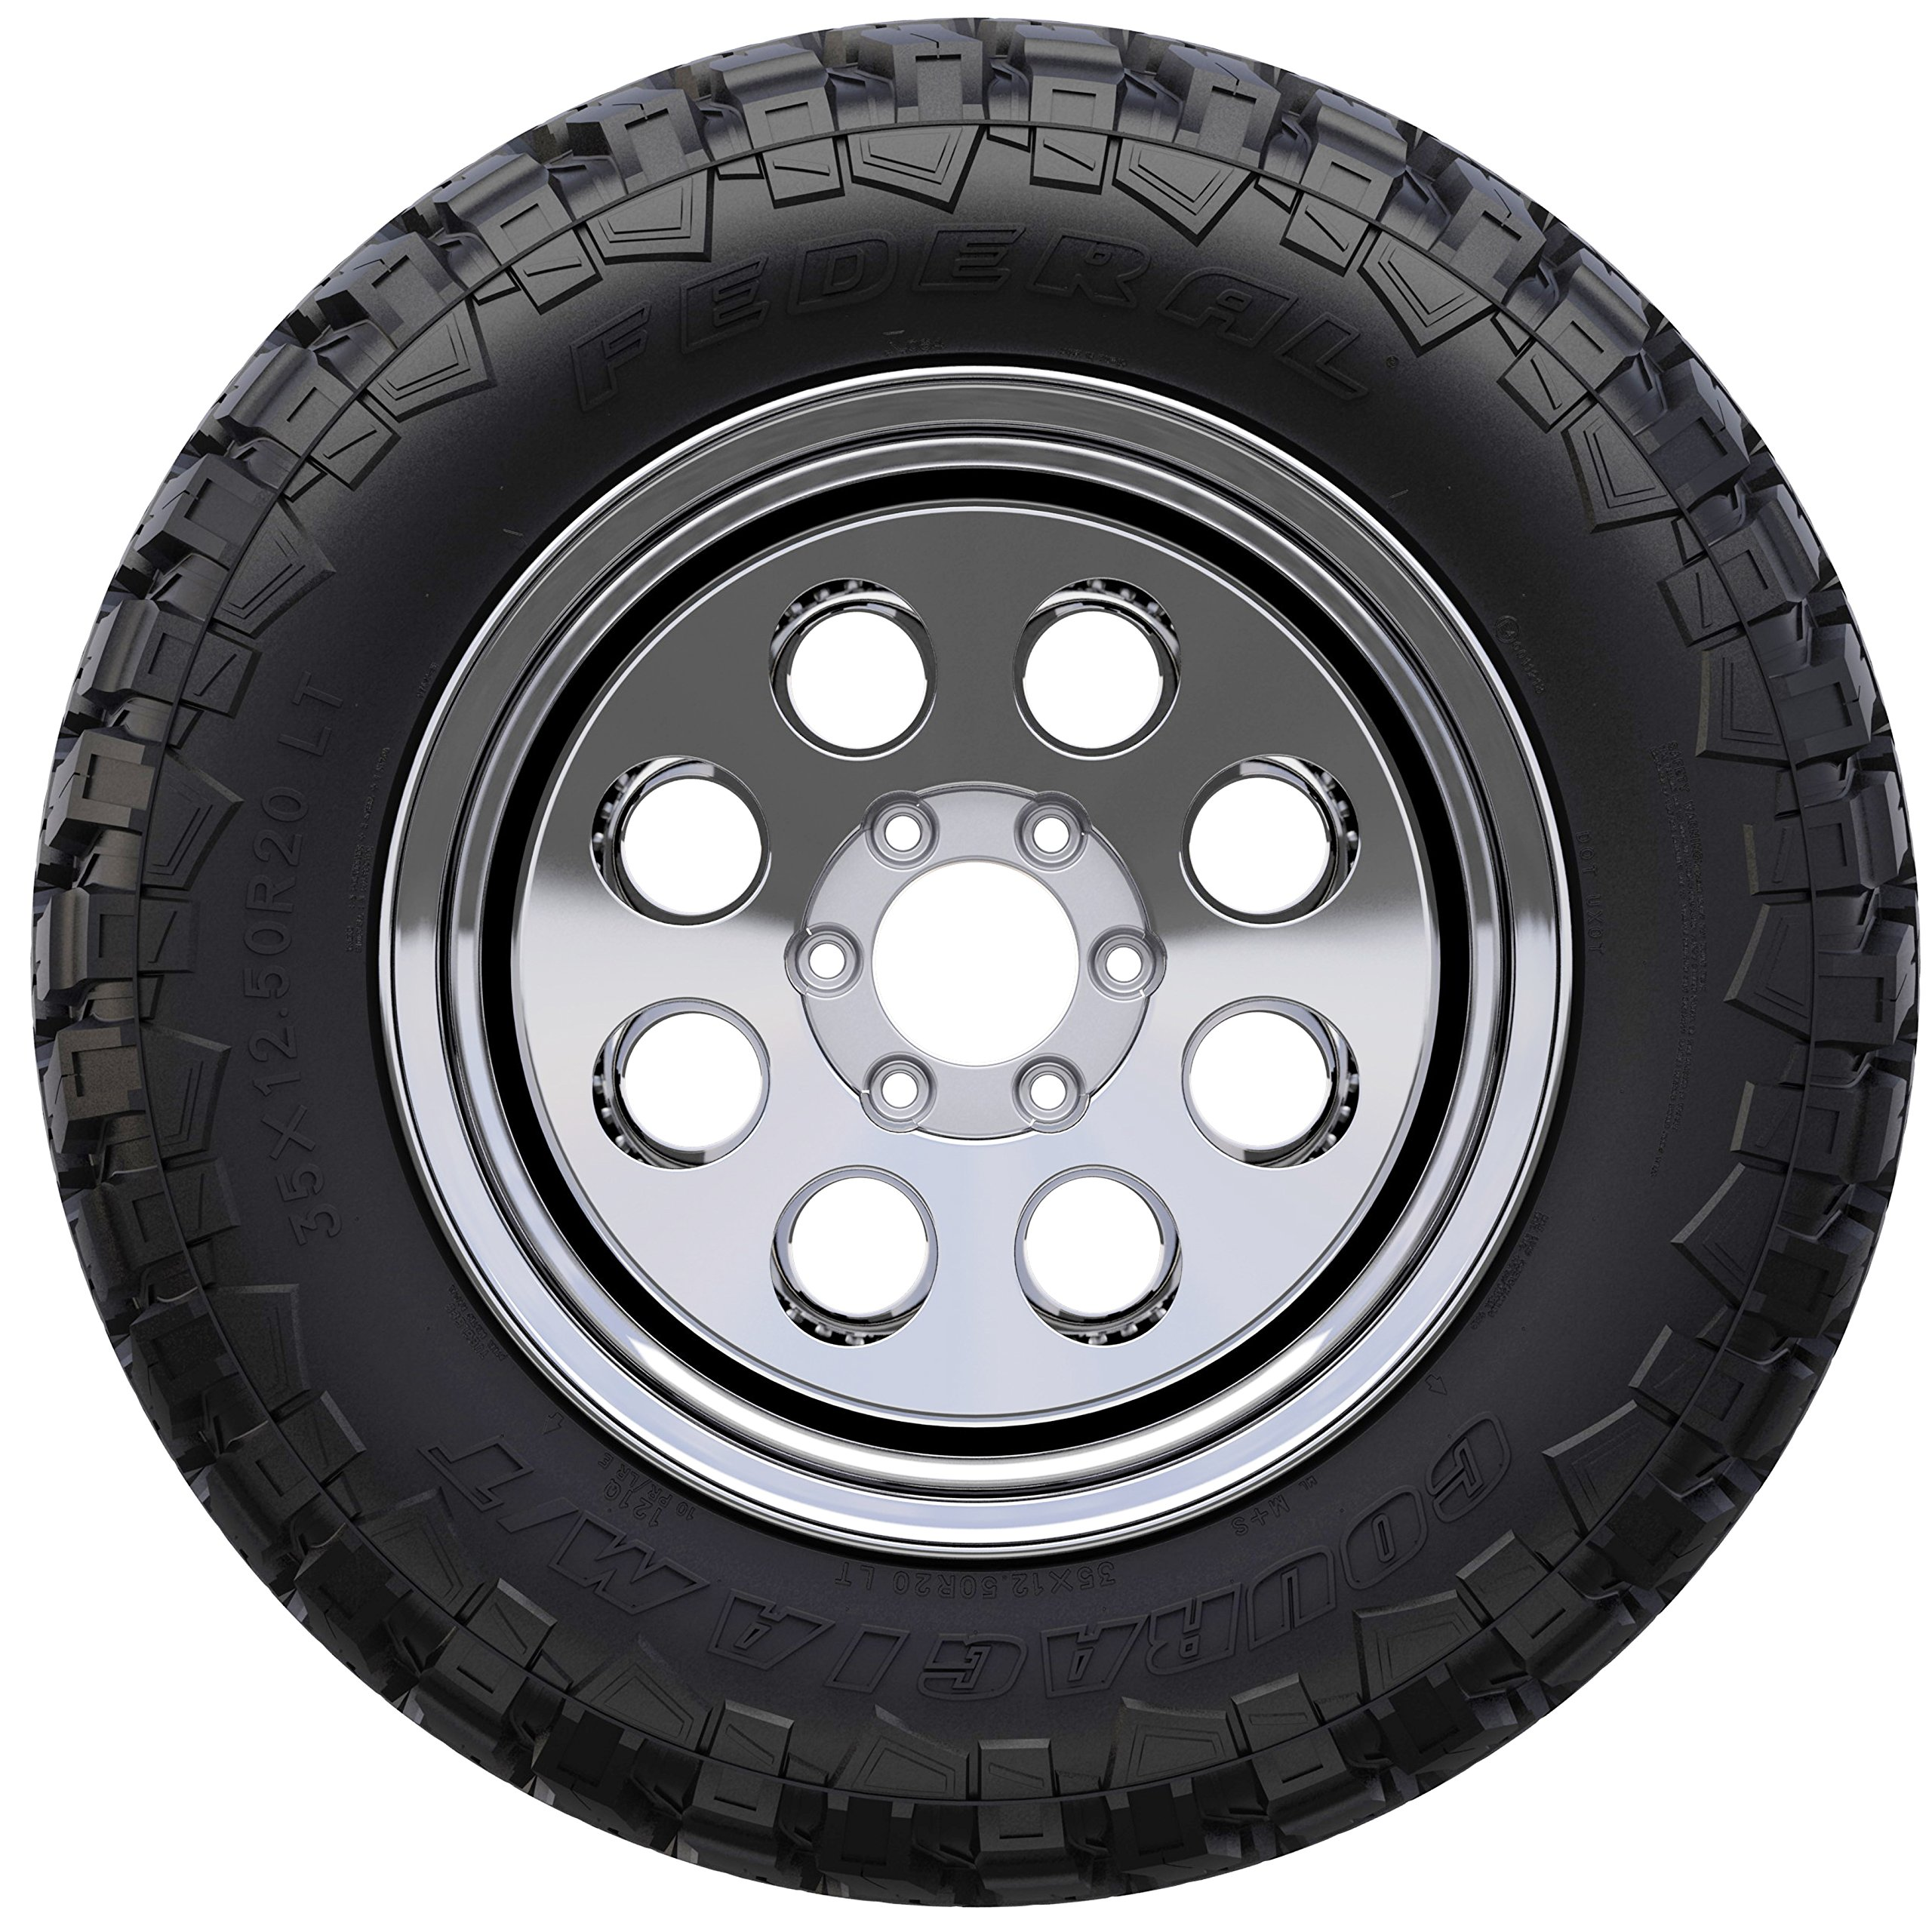 Federal Couragia M/T Mud-Terrain Radial Tire - 33x12.5R15 108Q by Federal (Image #3)